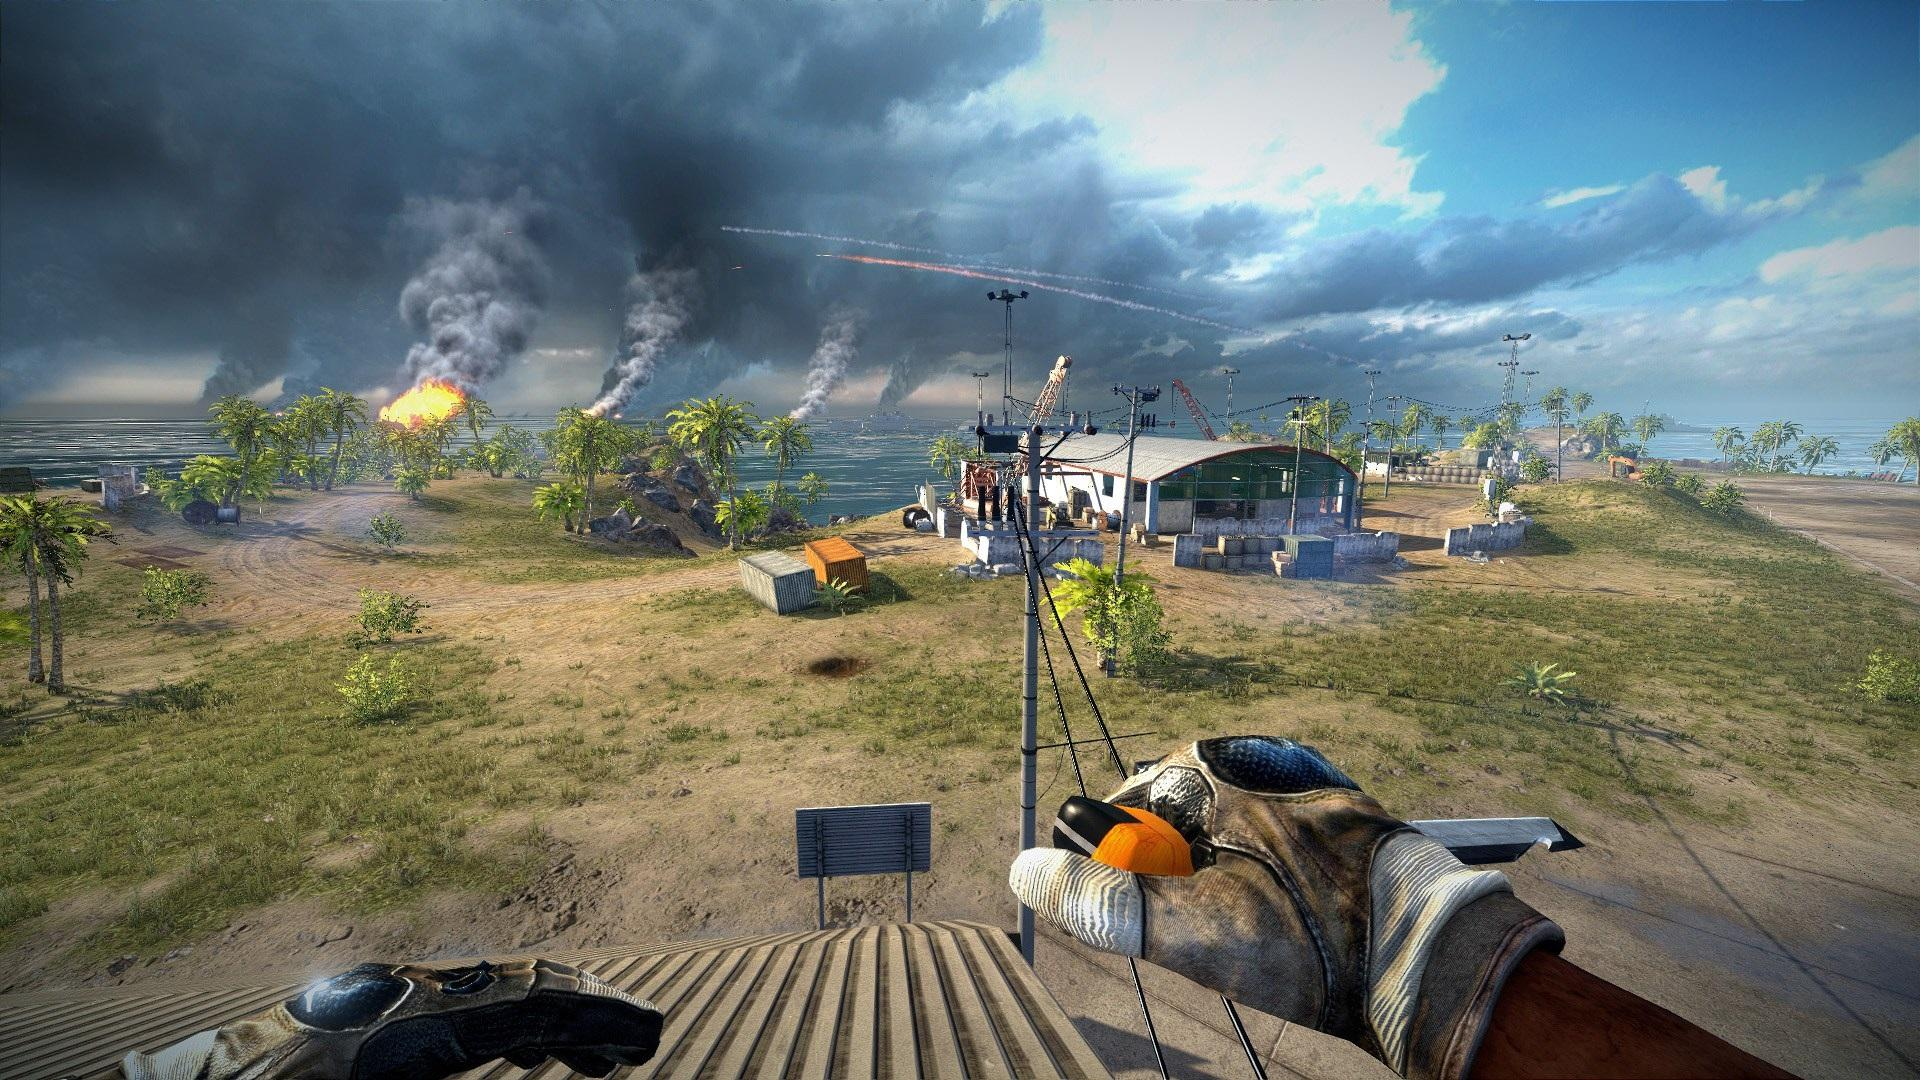 Battlefield, battlefield2, helicopter, tutorial, bf2, heli, diameter, videogame, videogames, games, pc, gaming, armydr